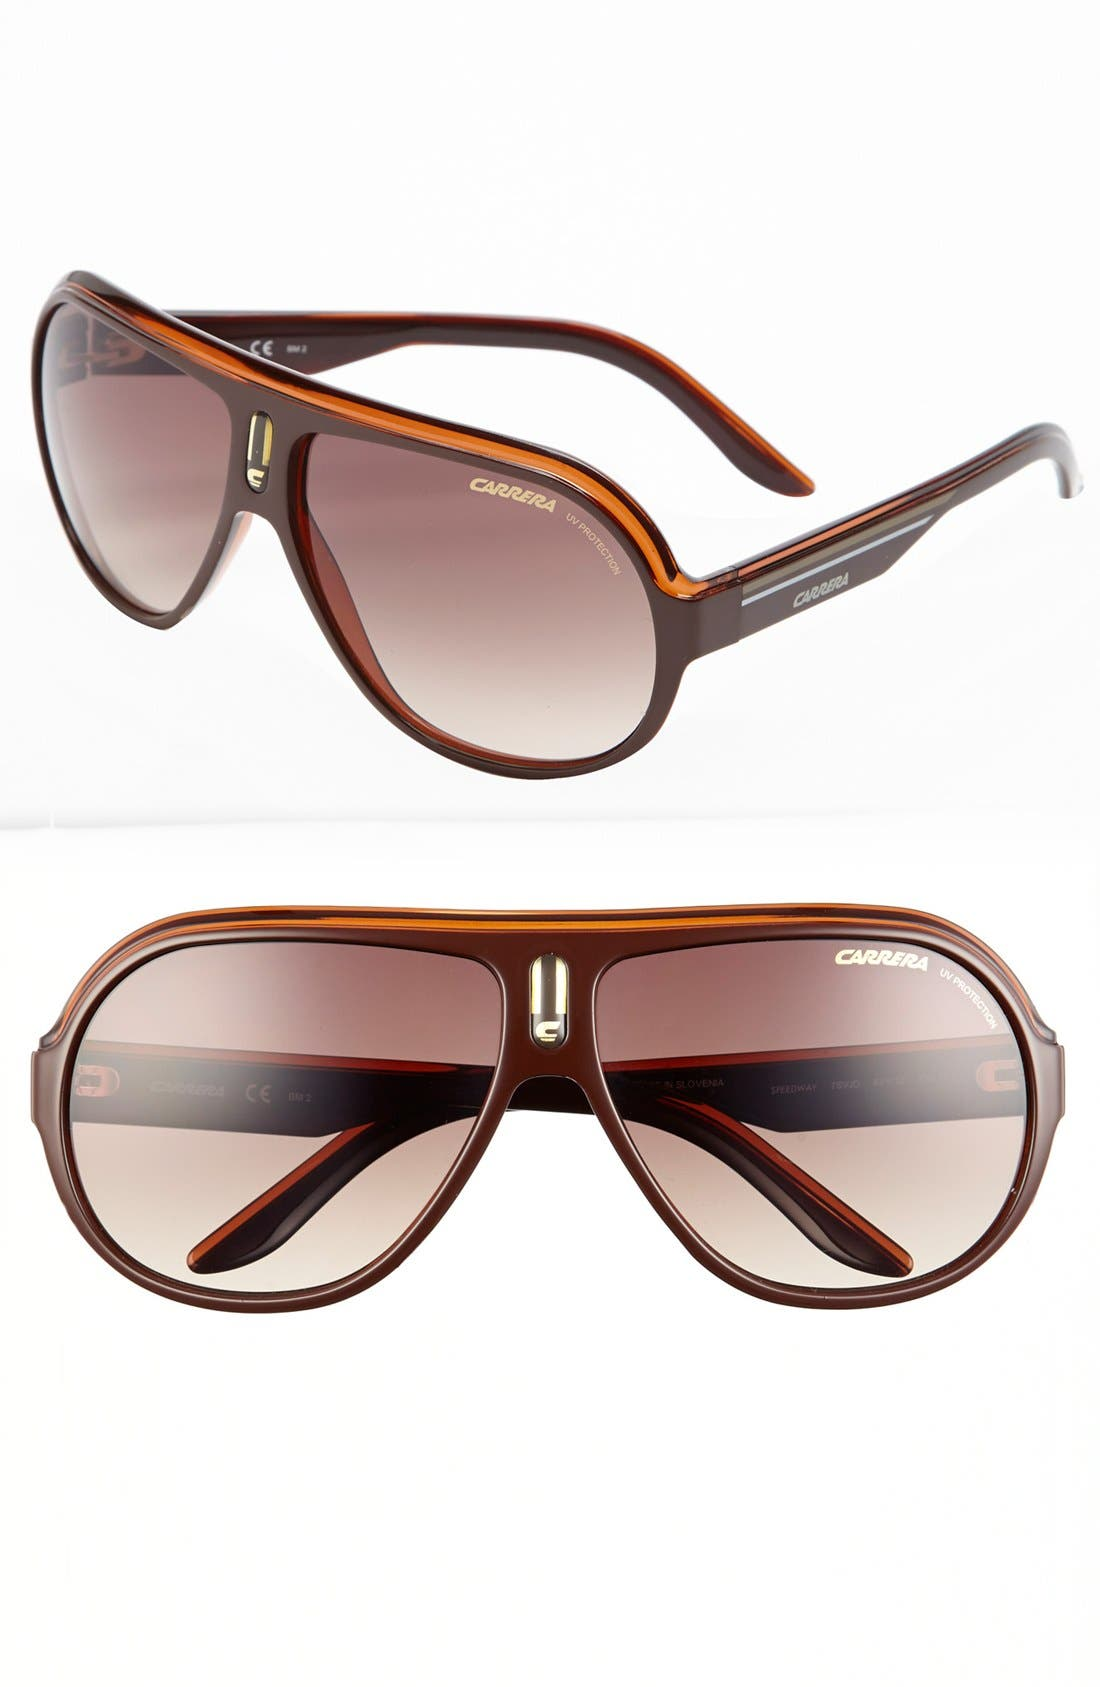 Alternate Image 1 Selected - Carrera Eyewear 'Speedway' 63mm Aviator Sunglasses